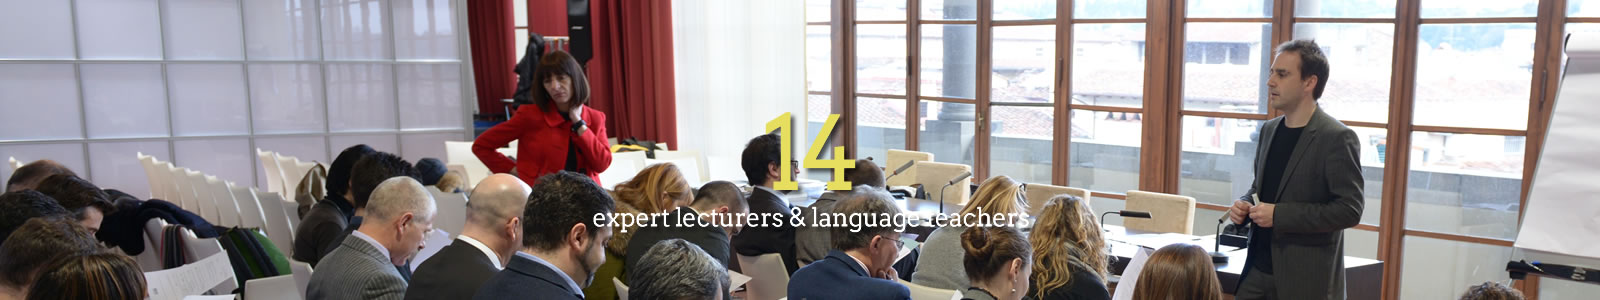 14 expert lecturers